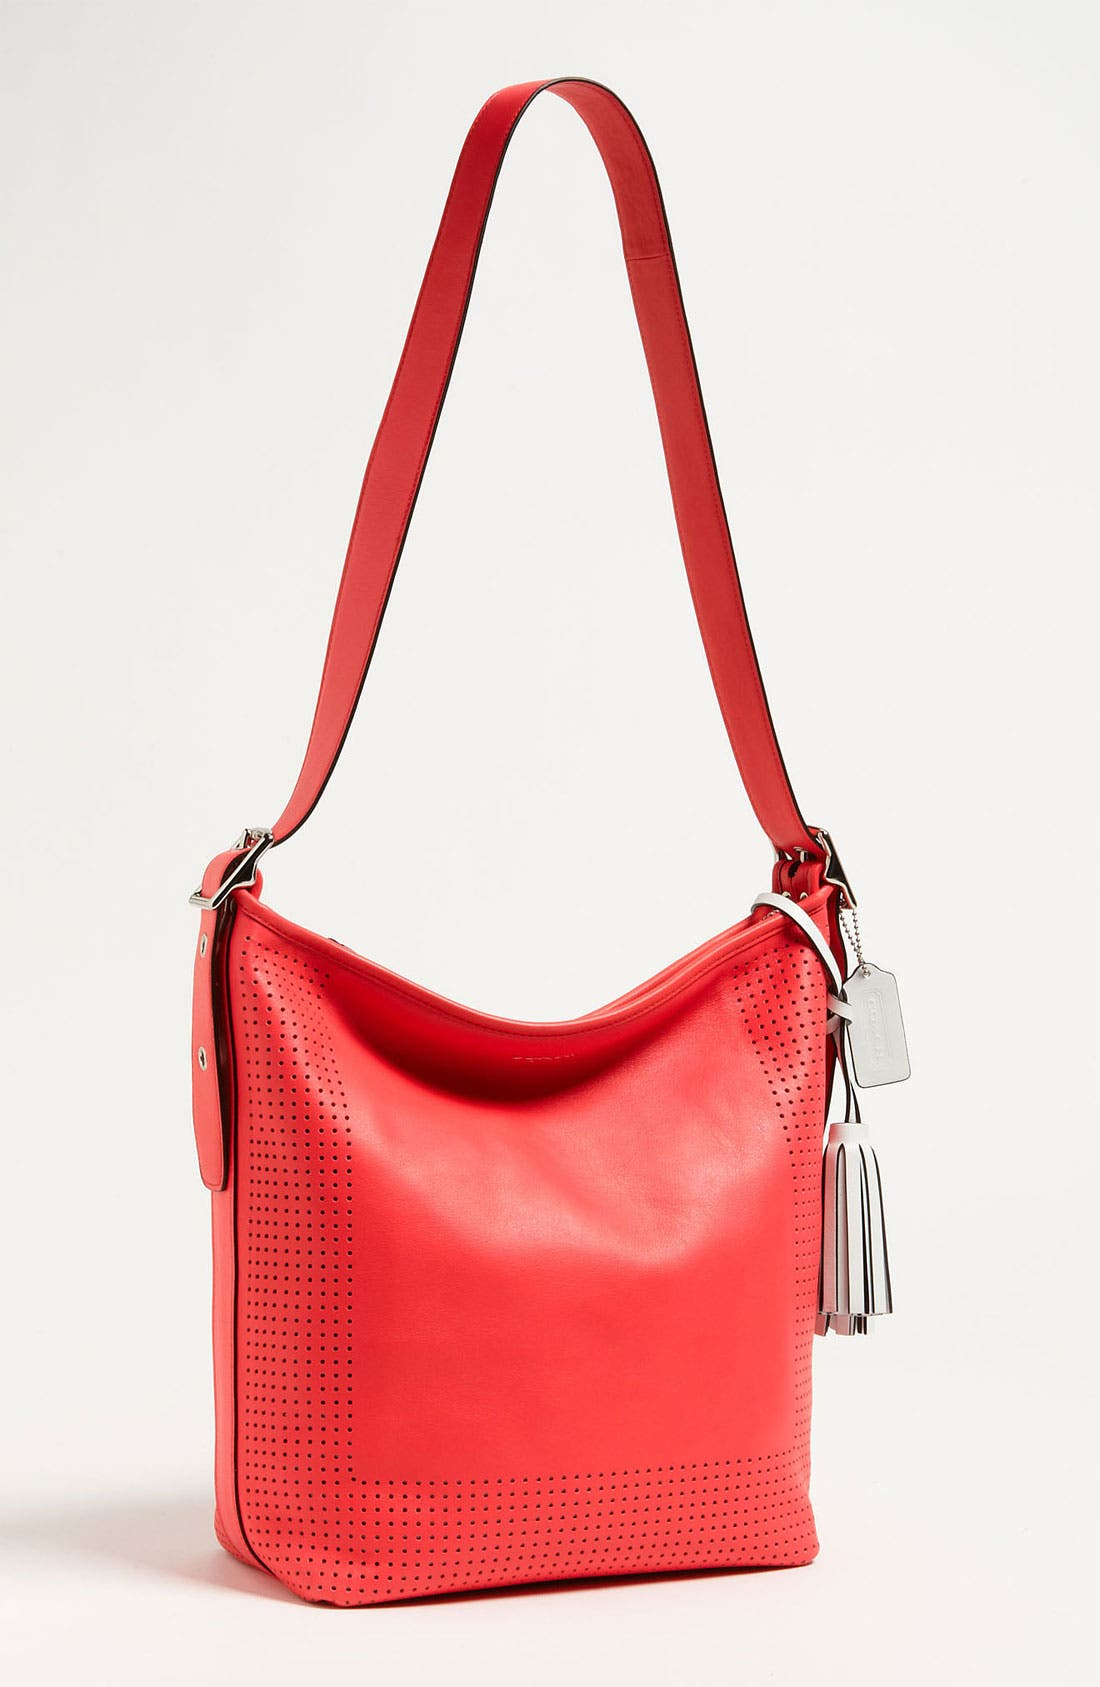 Main Image - COACH 'Legacy' Perforated Leather Shoulder Bag